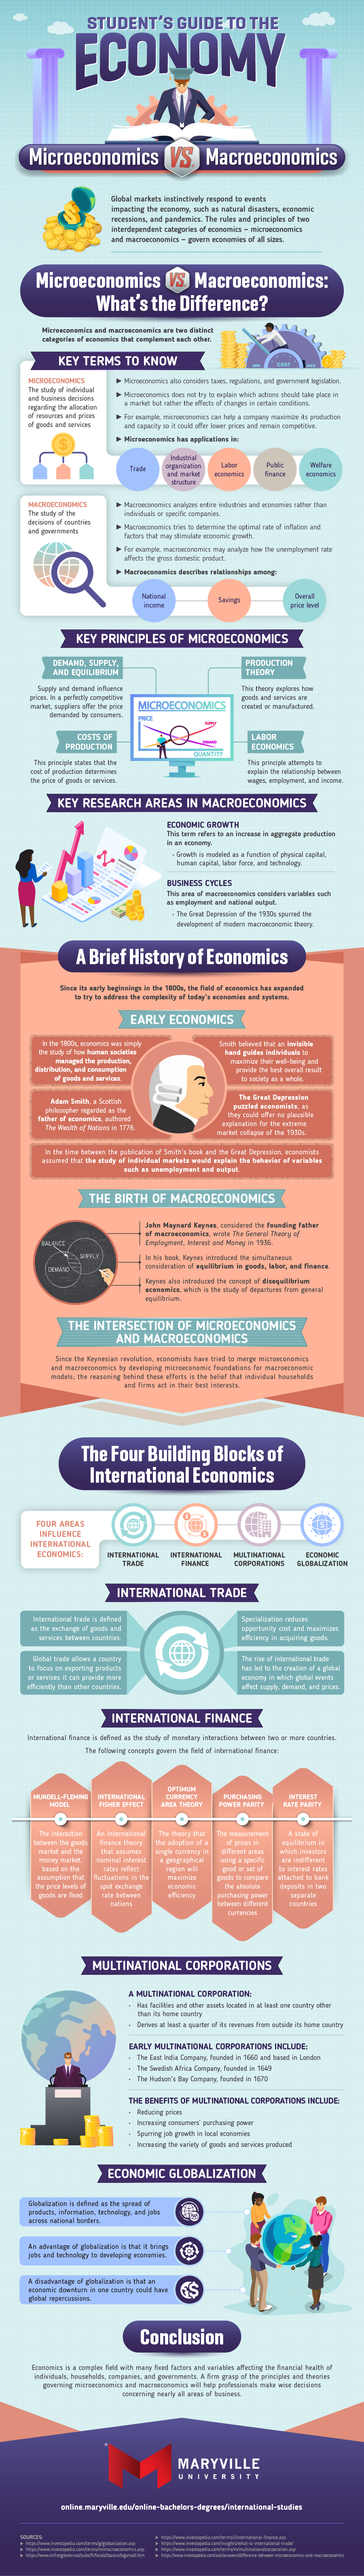 How microeconomics and macroeconomics collectively shape the economic field.